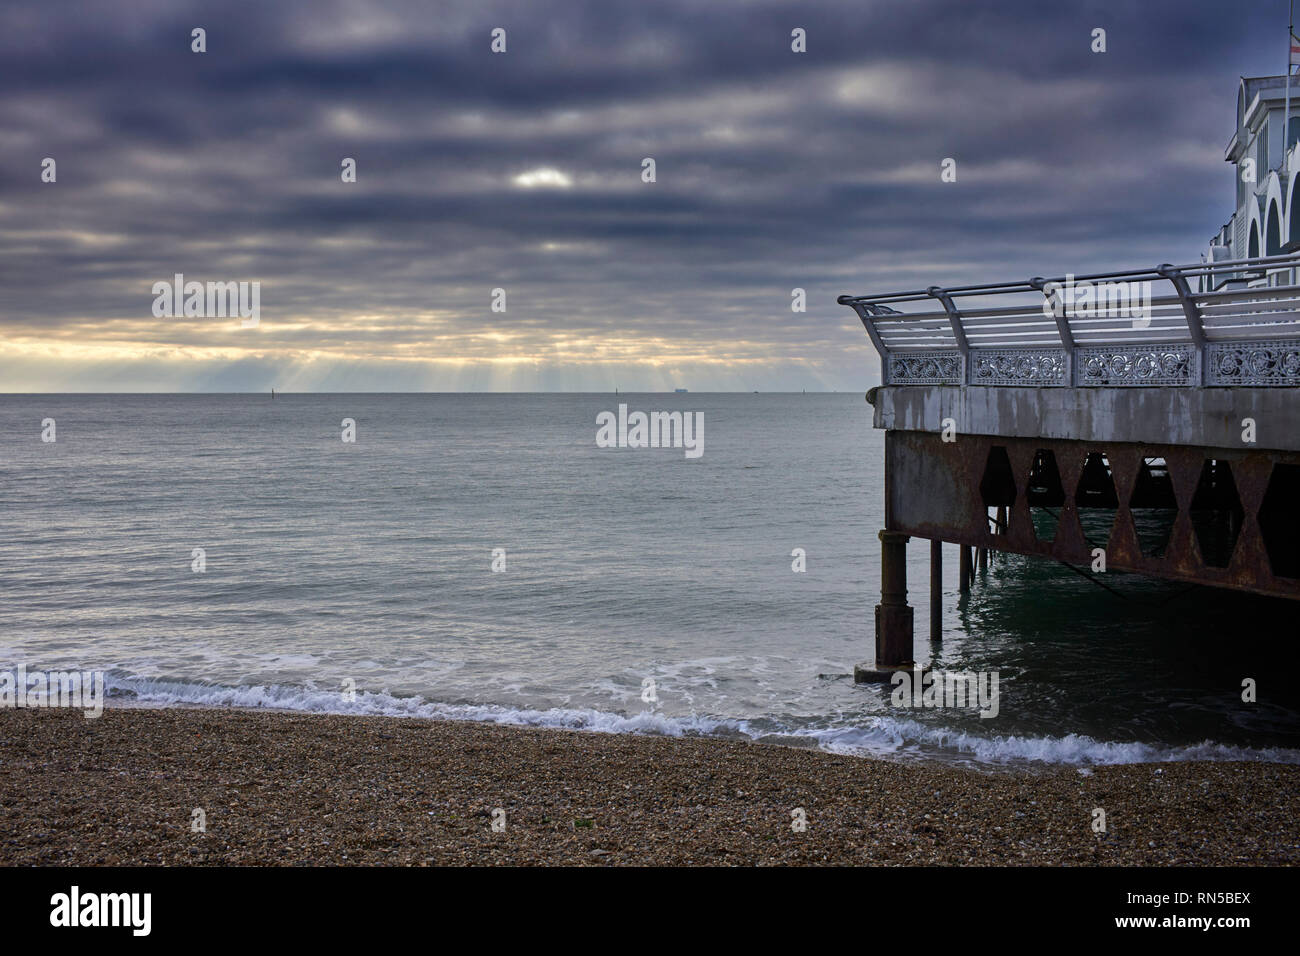 Dark skies over South Parade pier and beach with views over the Solent - Stock Image